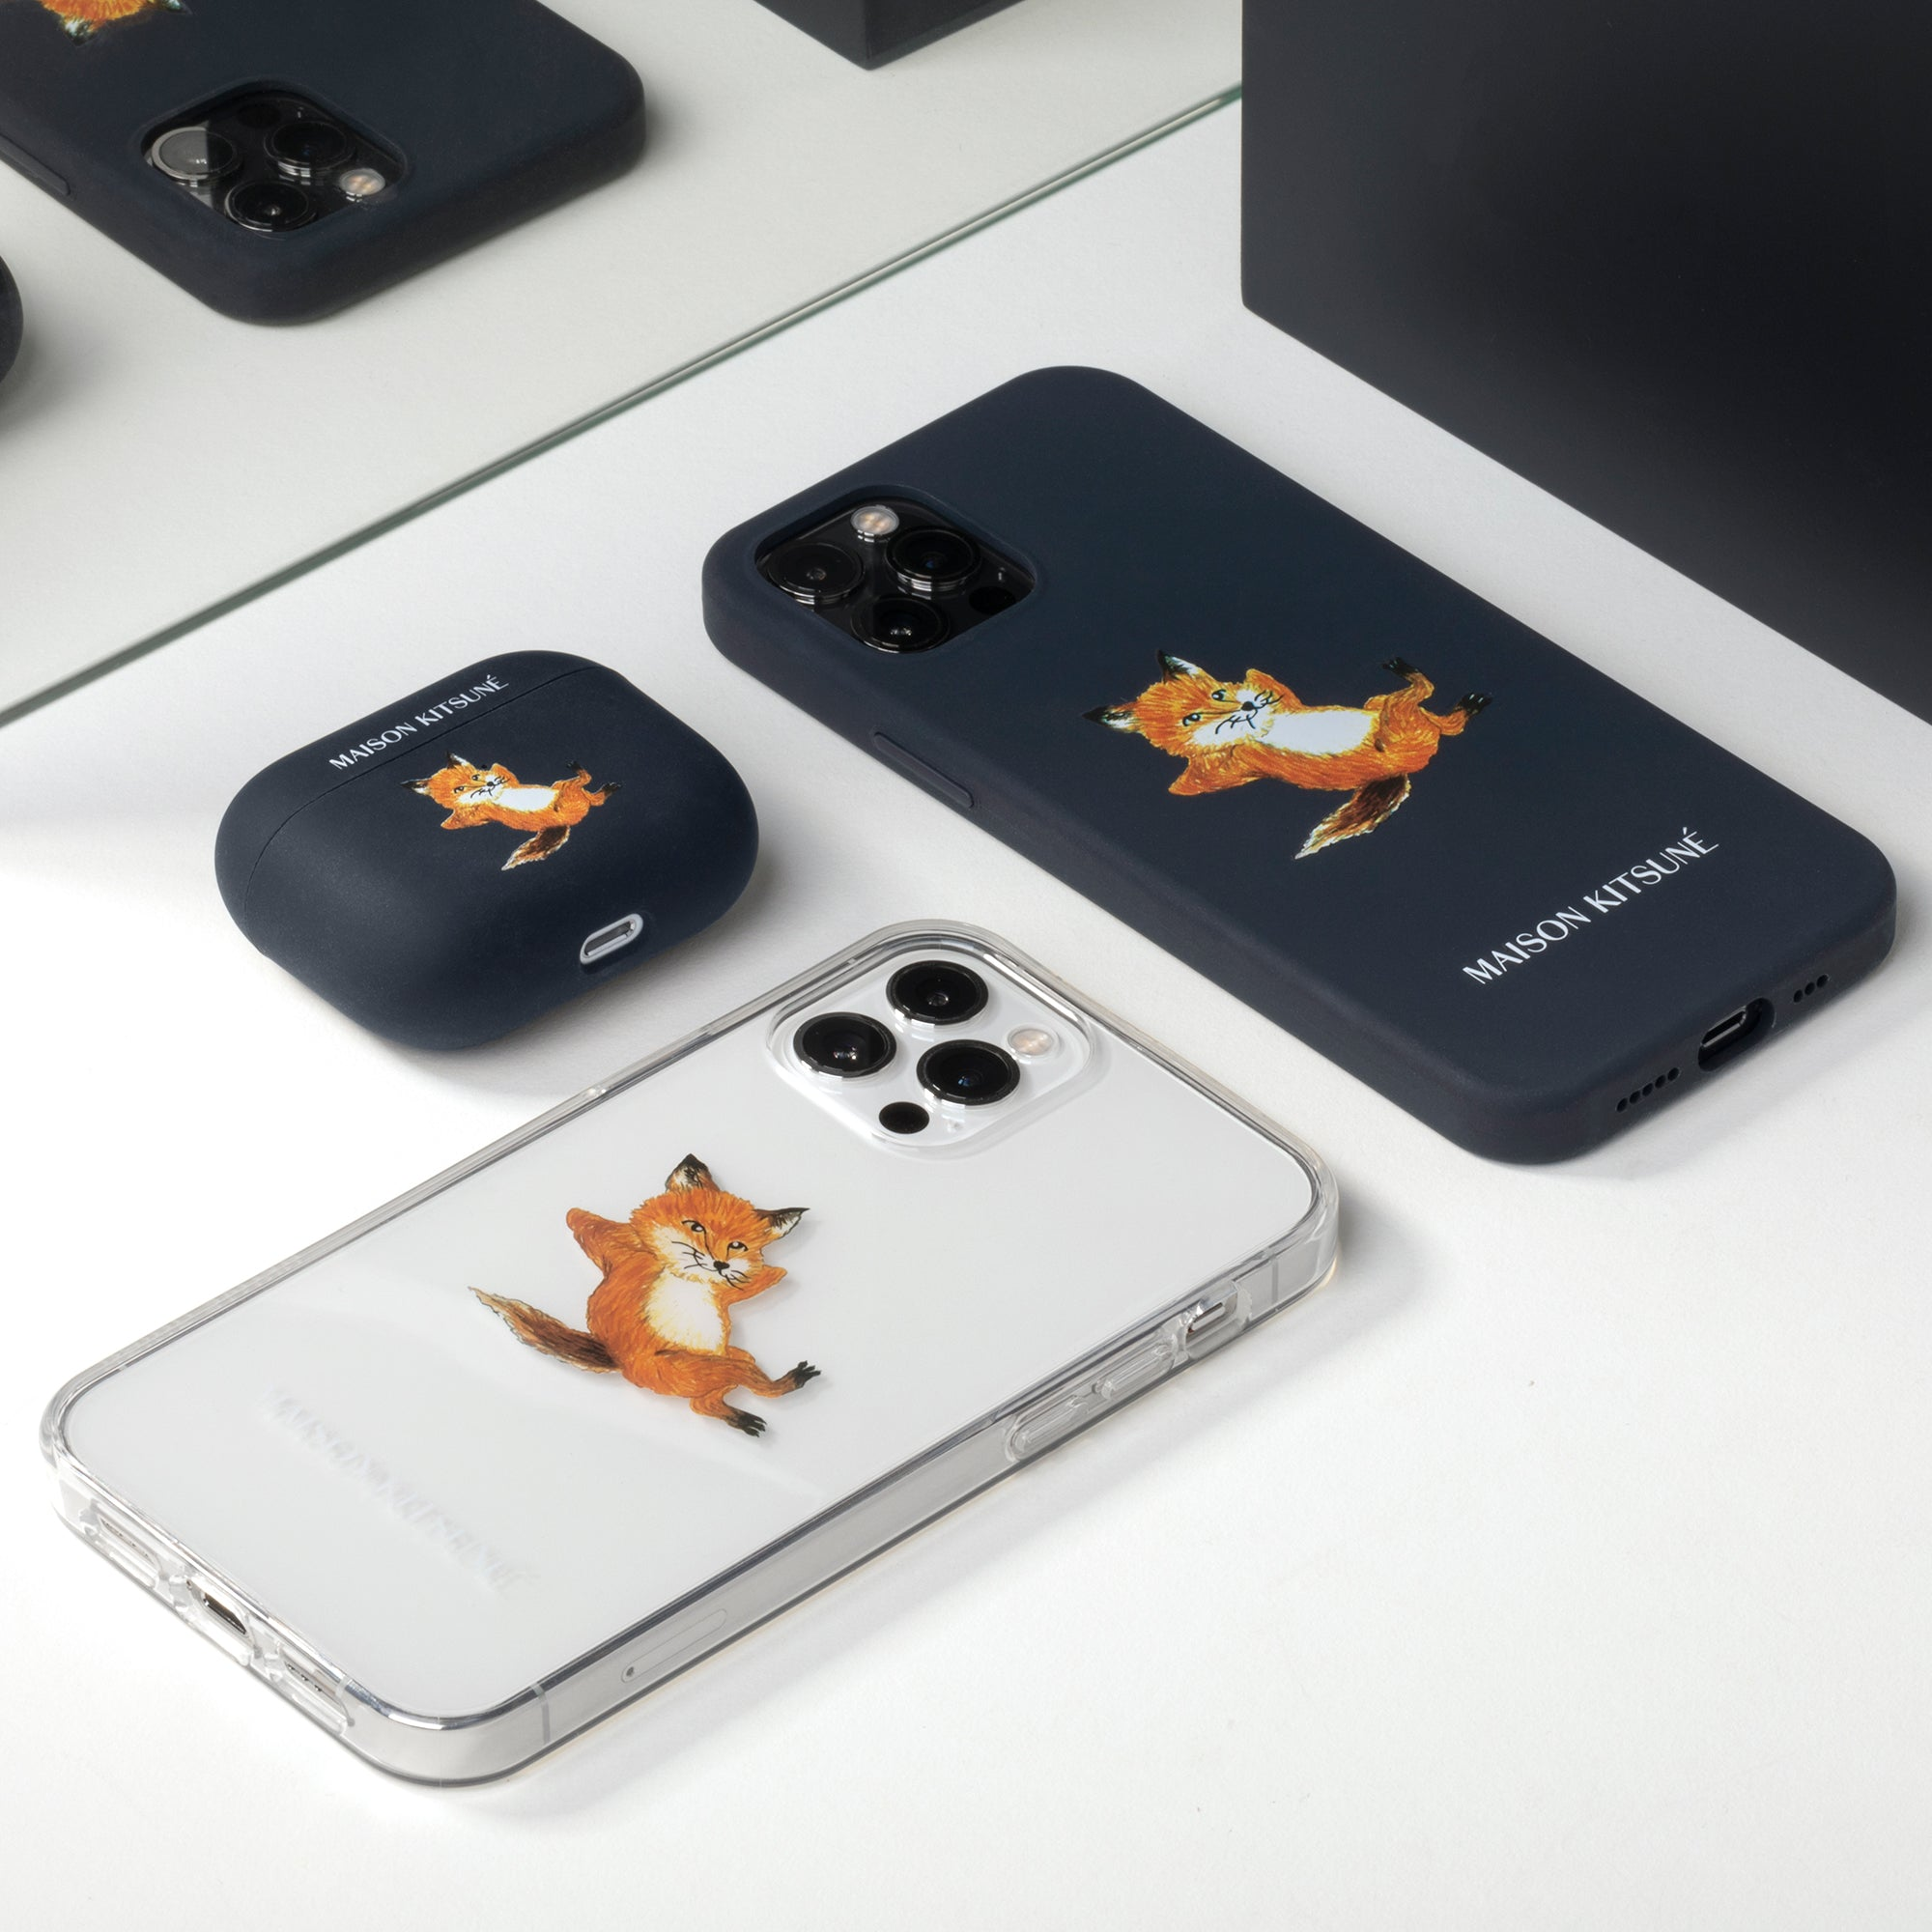 34480260120715,34480260153483,Chillax Fox Case (iPhone 12 Mini)